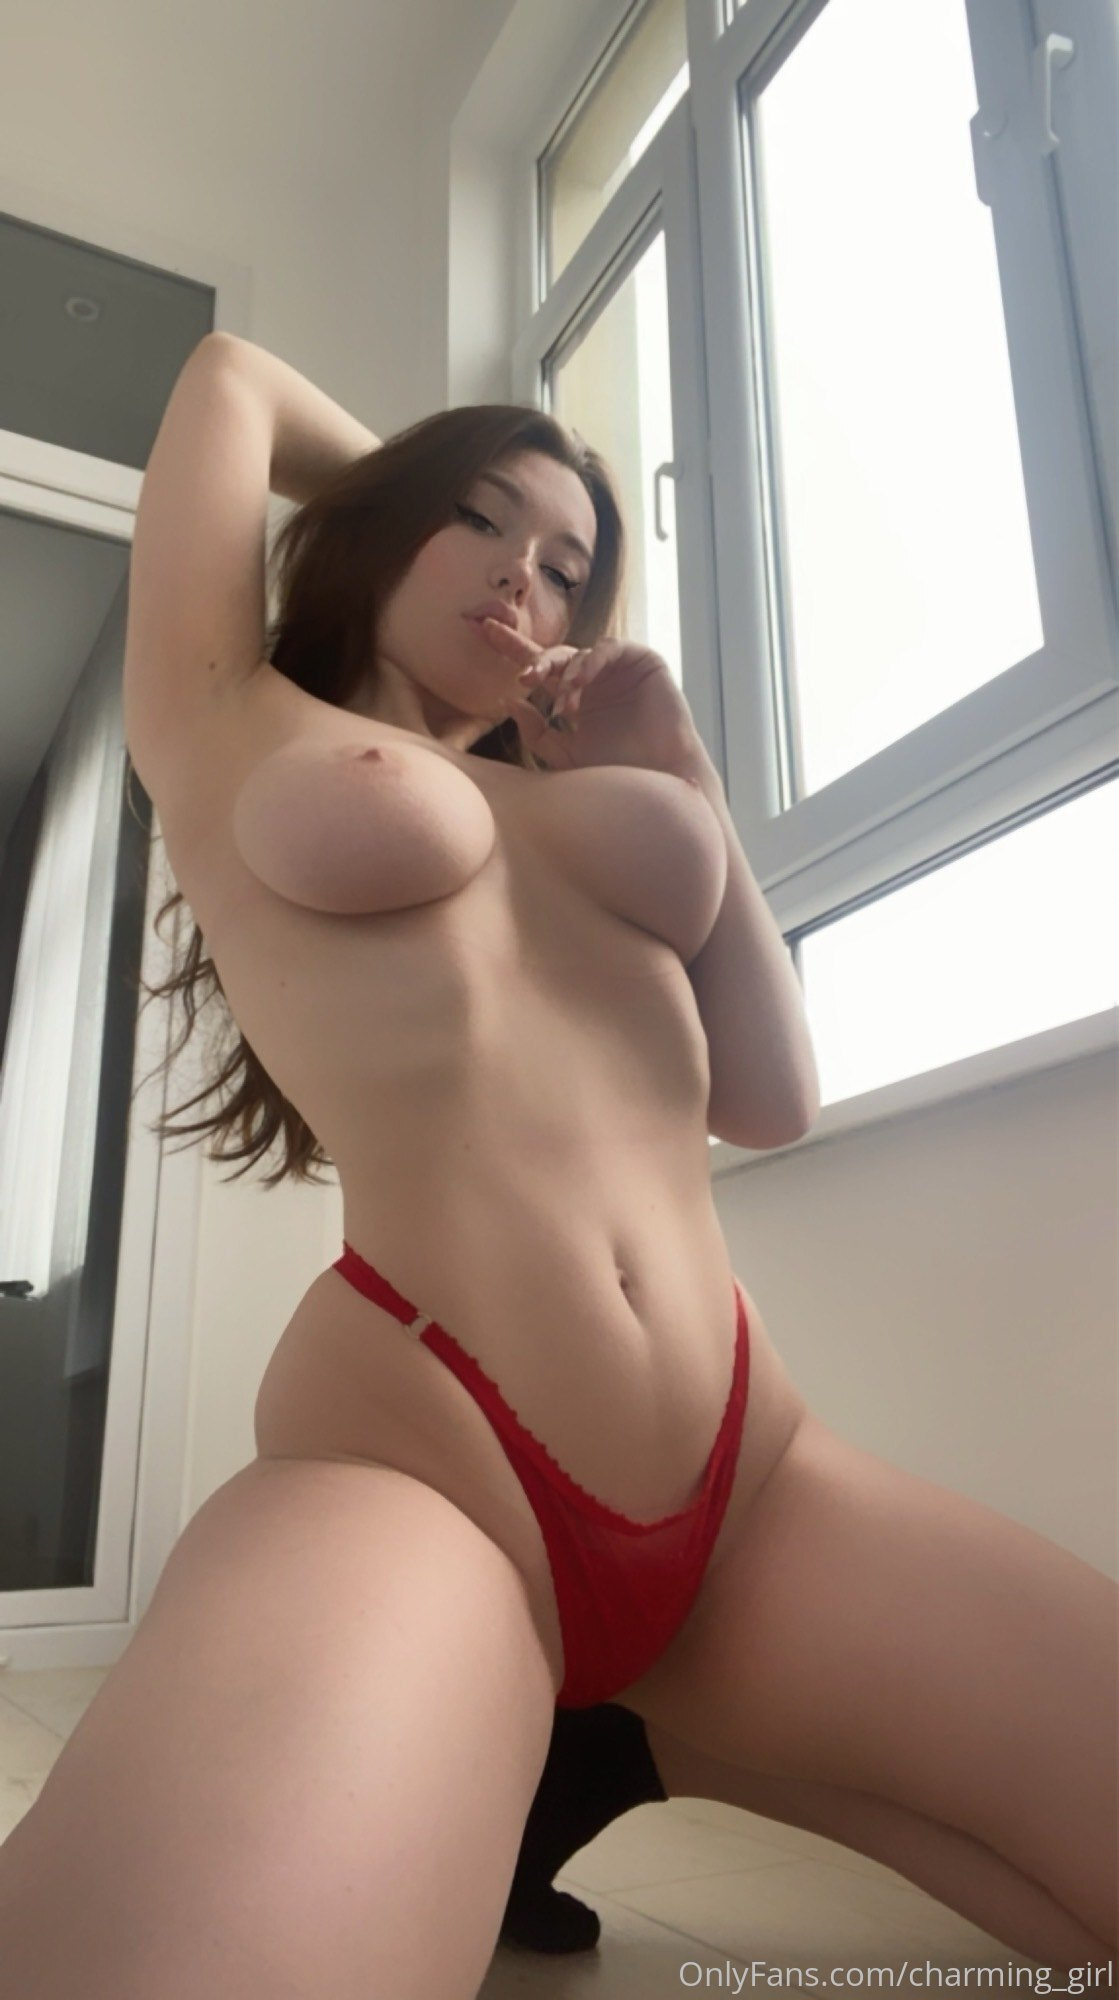 Charming girl Hot Nude Body OnlyFans Leaked Gallery